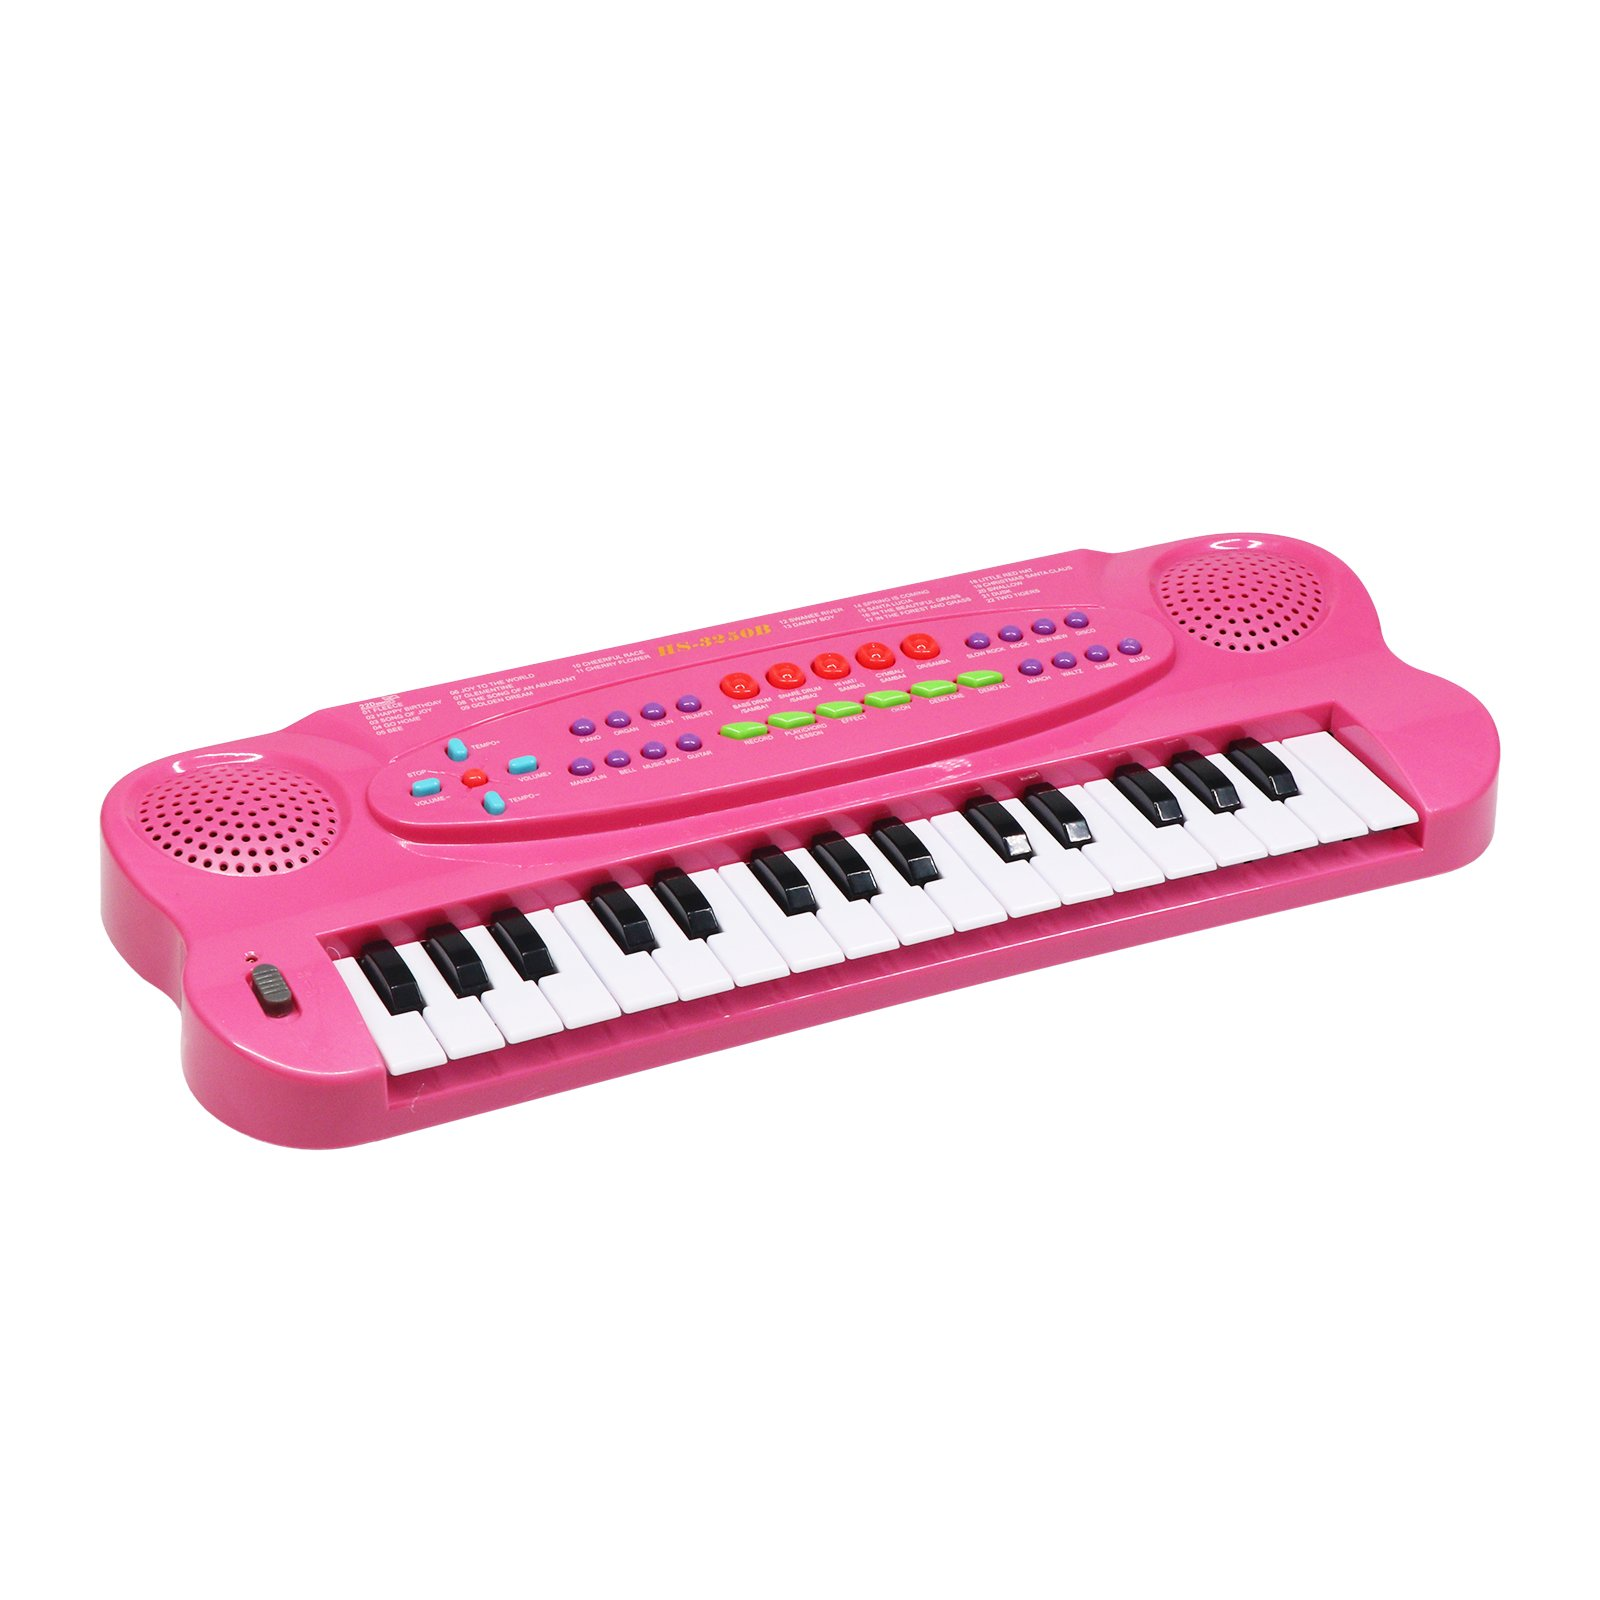 Piano for Kids, BETECHO 32 Keys Multifunction Electronic Kids Keyboard Piano Music Instrument for Toddler with Microphone (Pink)